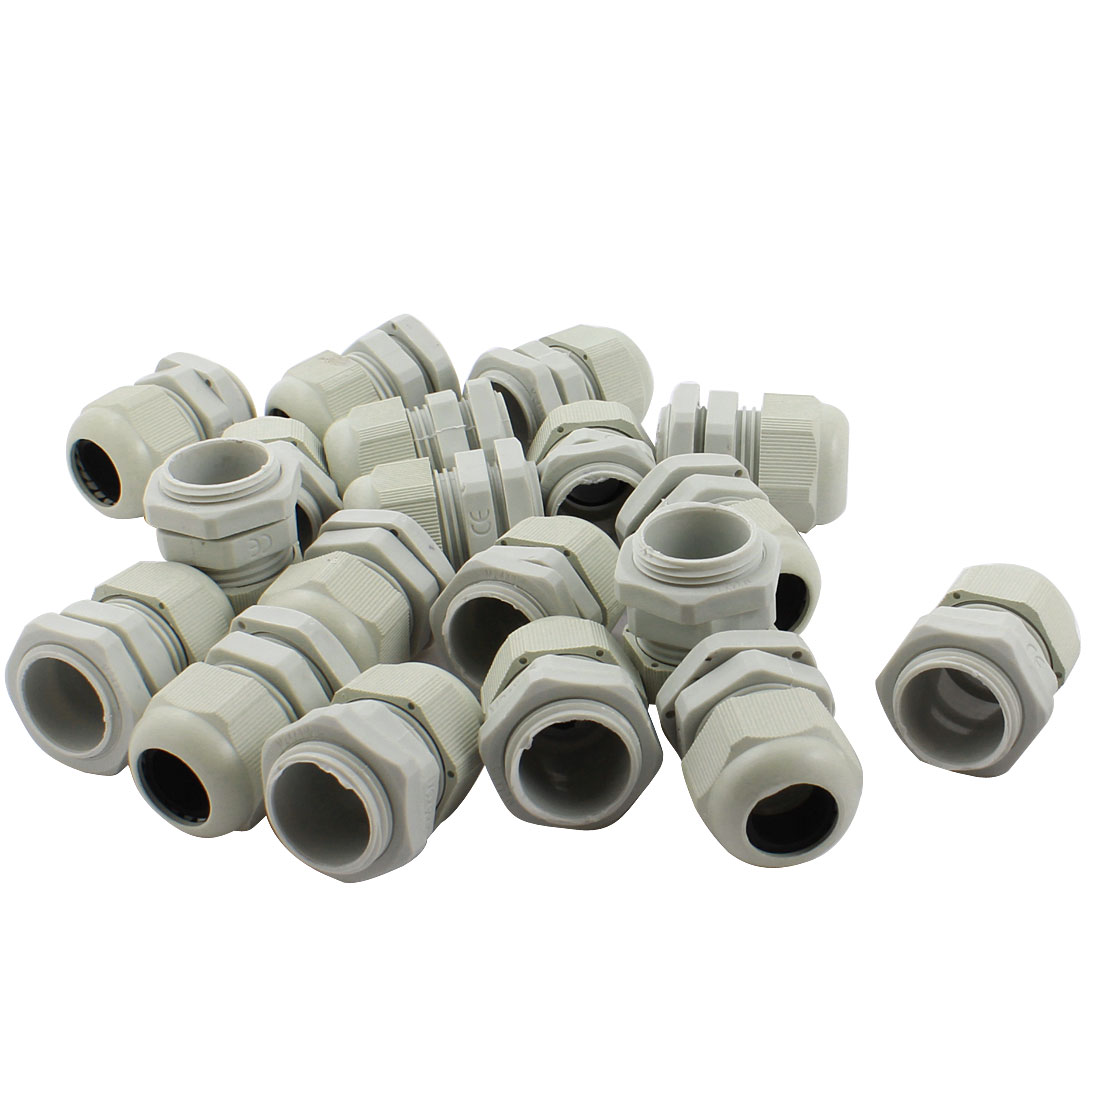 20Pcs M24X1.5 12mm to 16mm Waterproof Connector Adapter Joint Plastic Cable Gland White